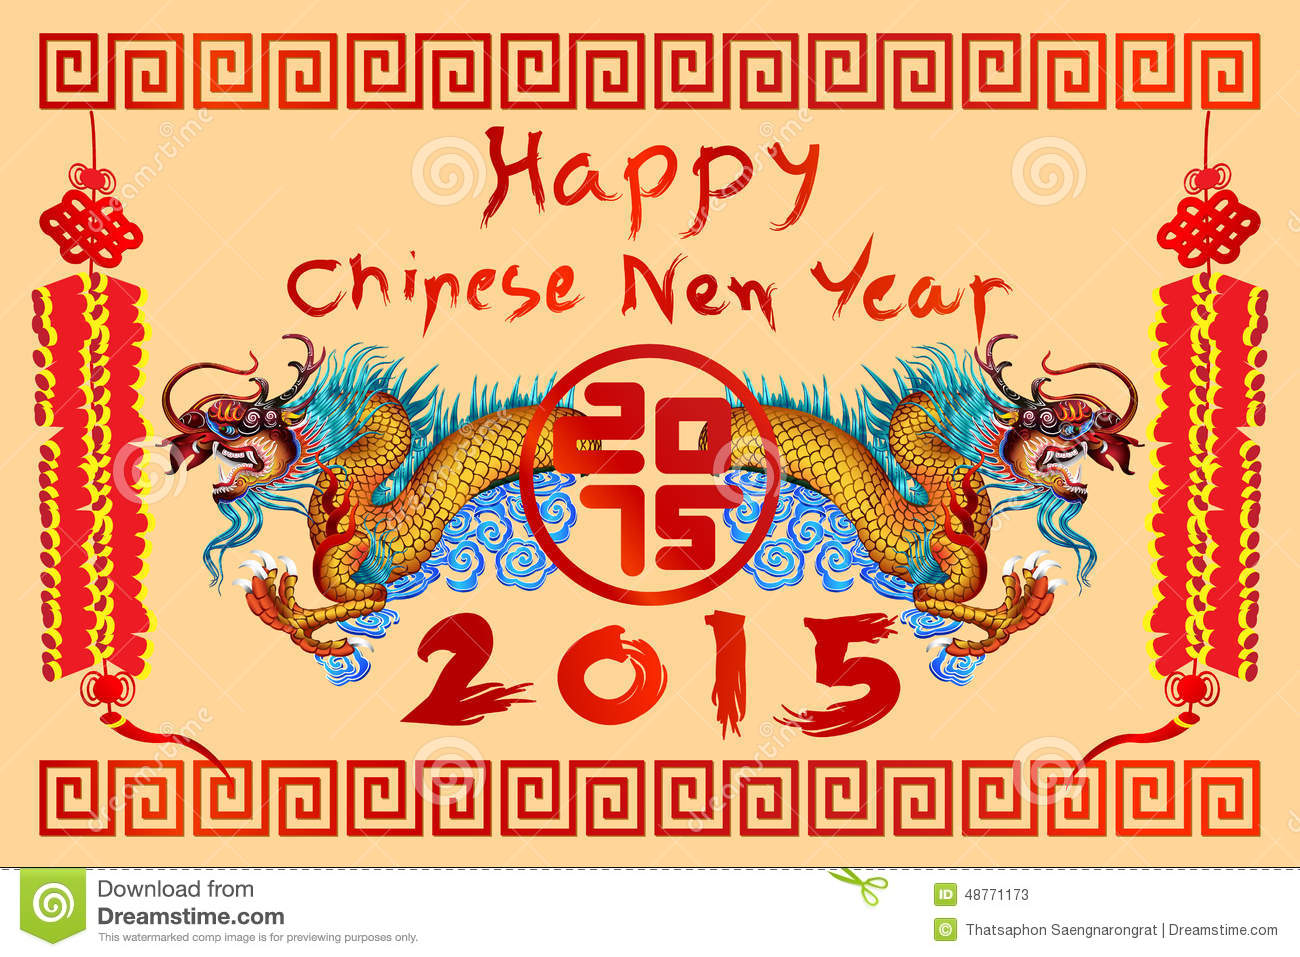 Vintage Chinese Calendar : Illustration of chinese dragon happy new year with